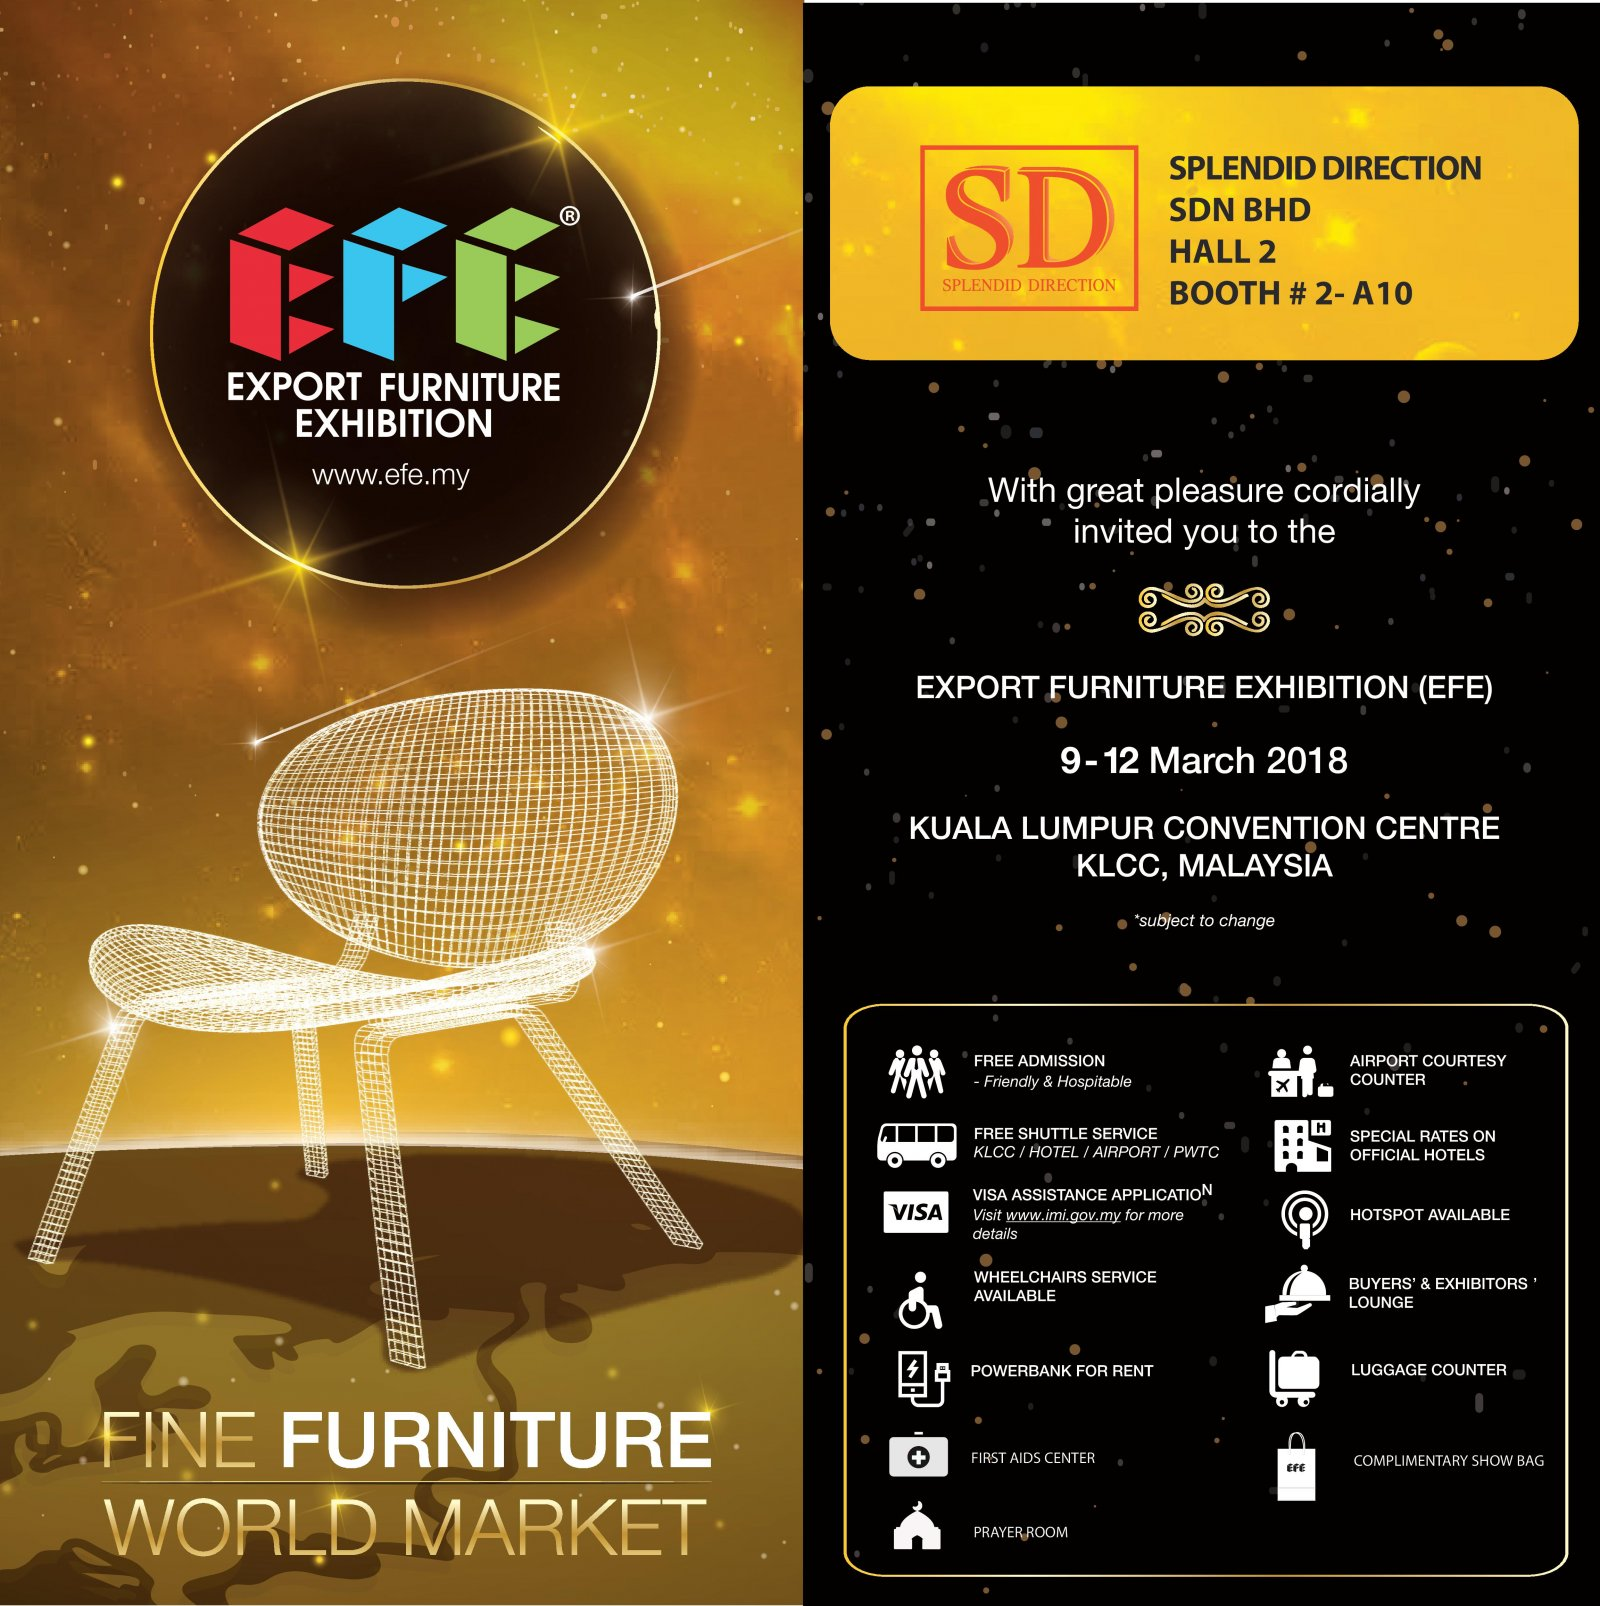 EFE 2018 @ KLCC Hall 2, Booth #2-A10